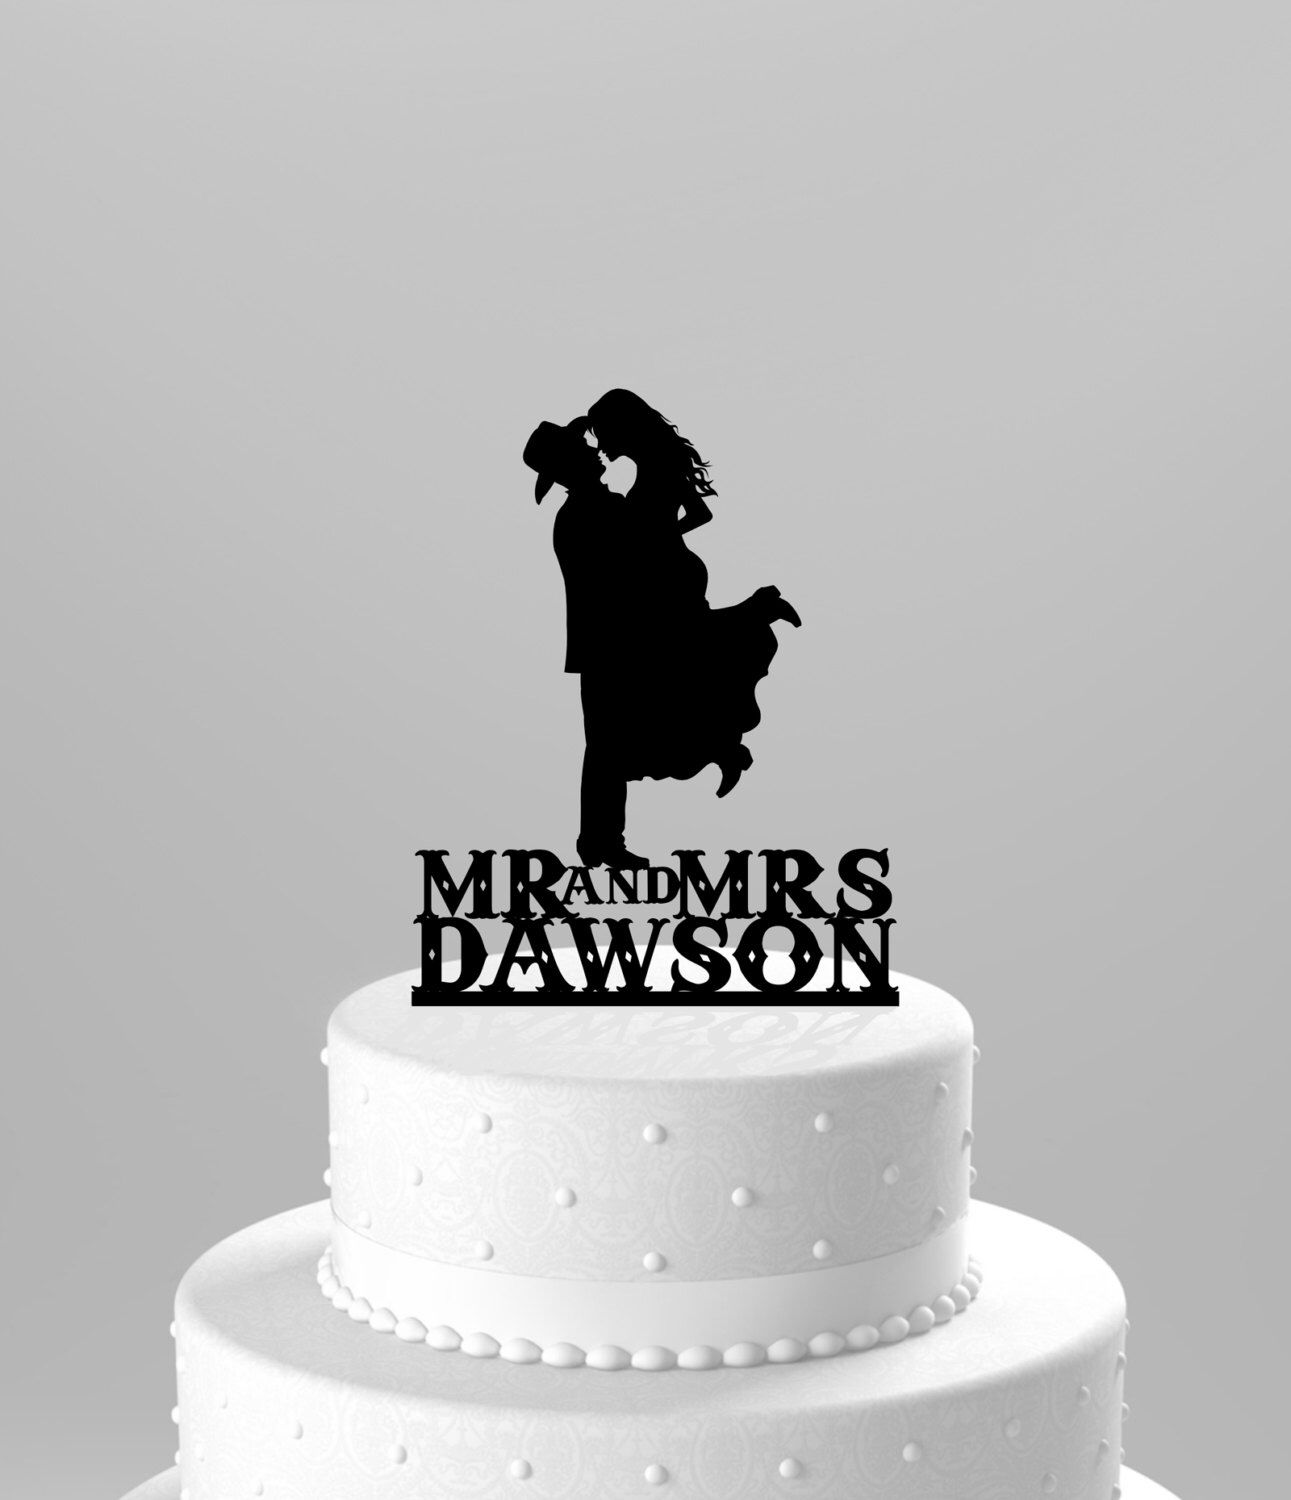 Country western wedding cake topper silhouette cowboy with hat country western wedding cake topper silhouette cowboy with hat both wearing boots personalized with name biocorpaavc Images